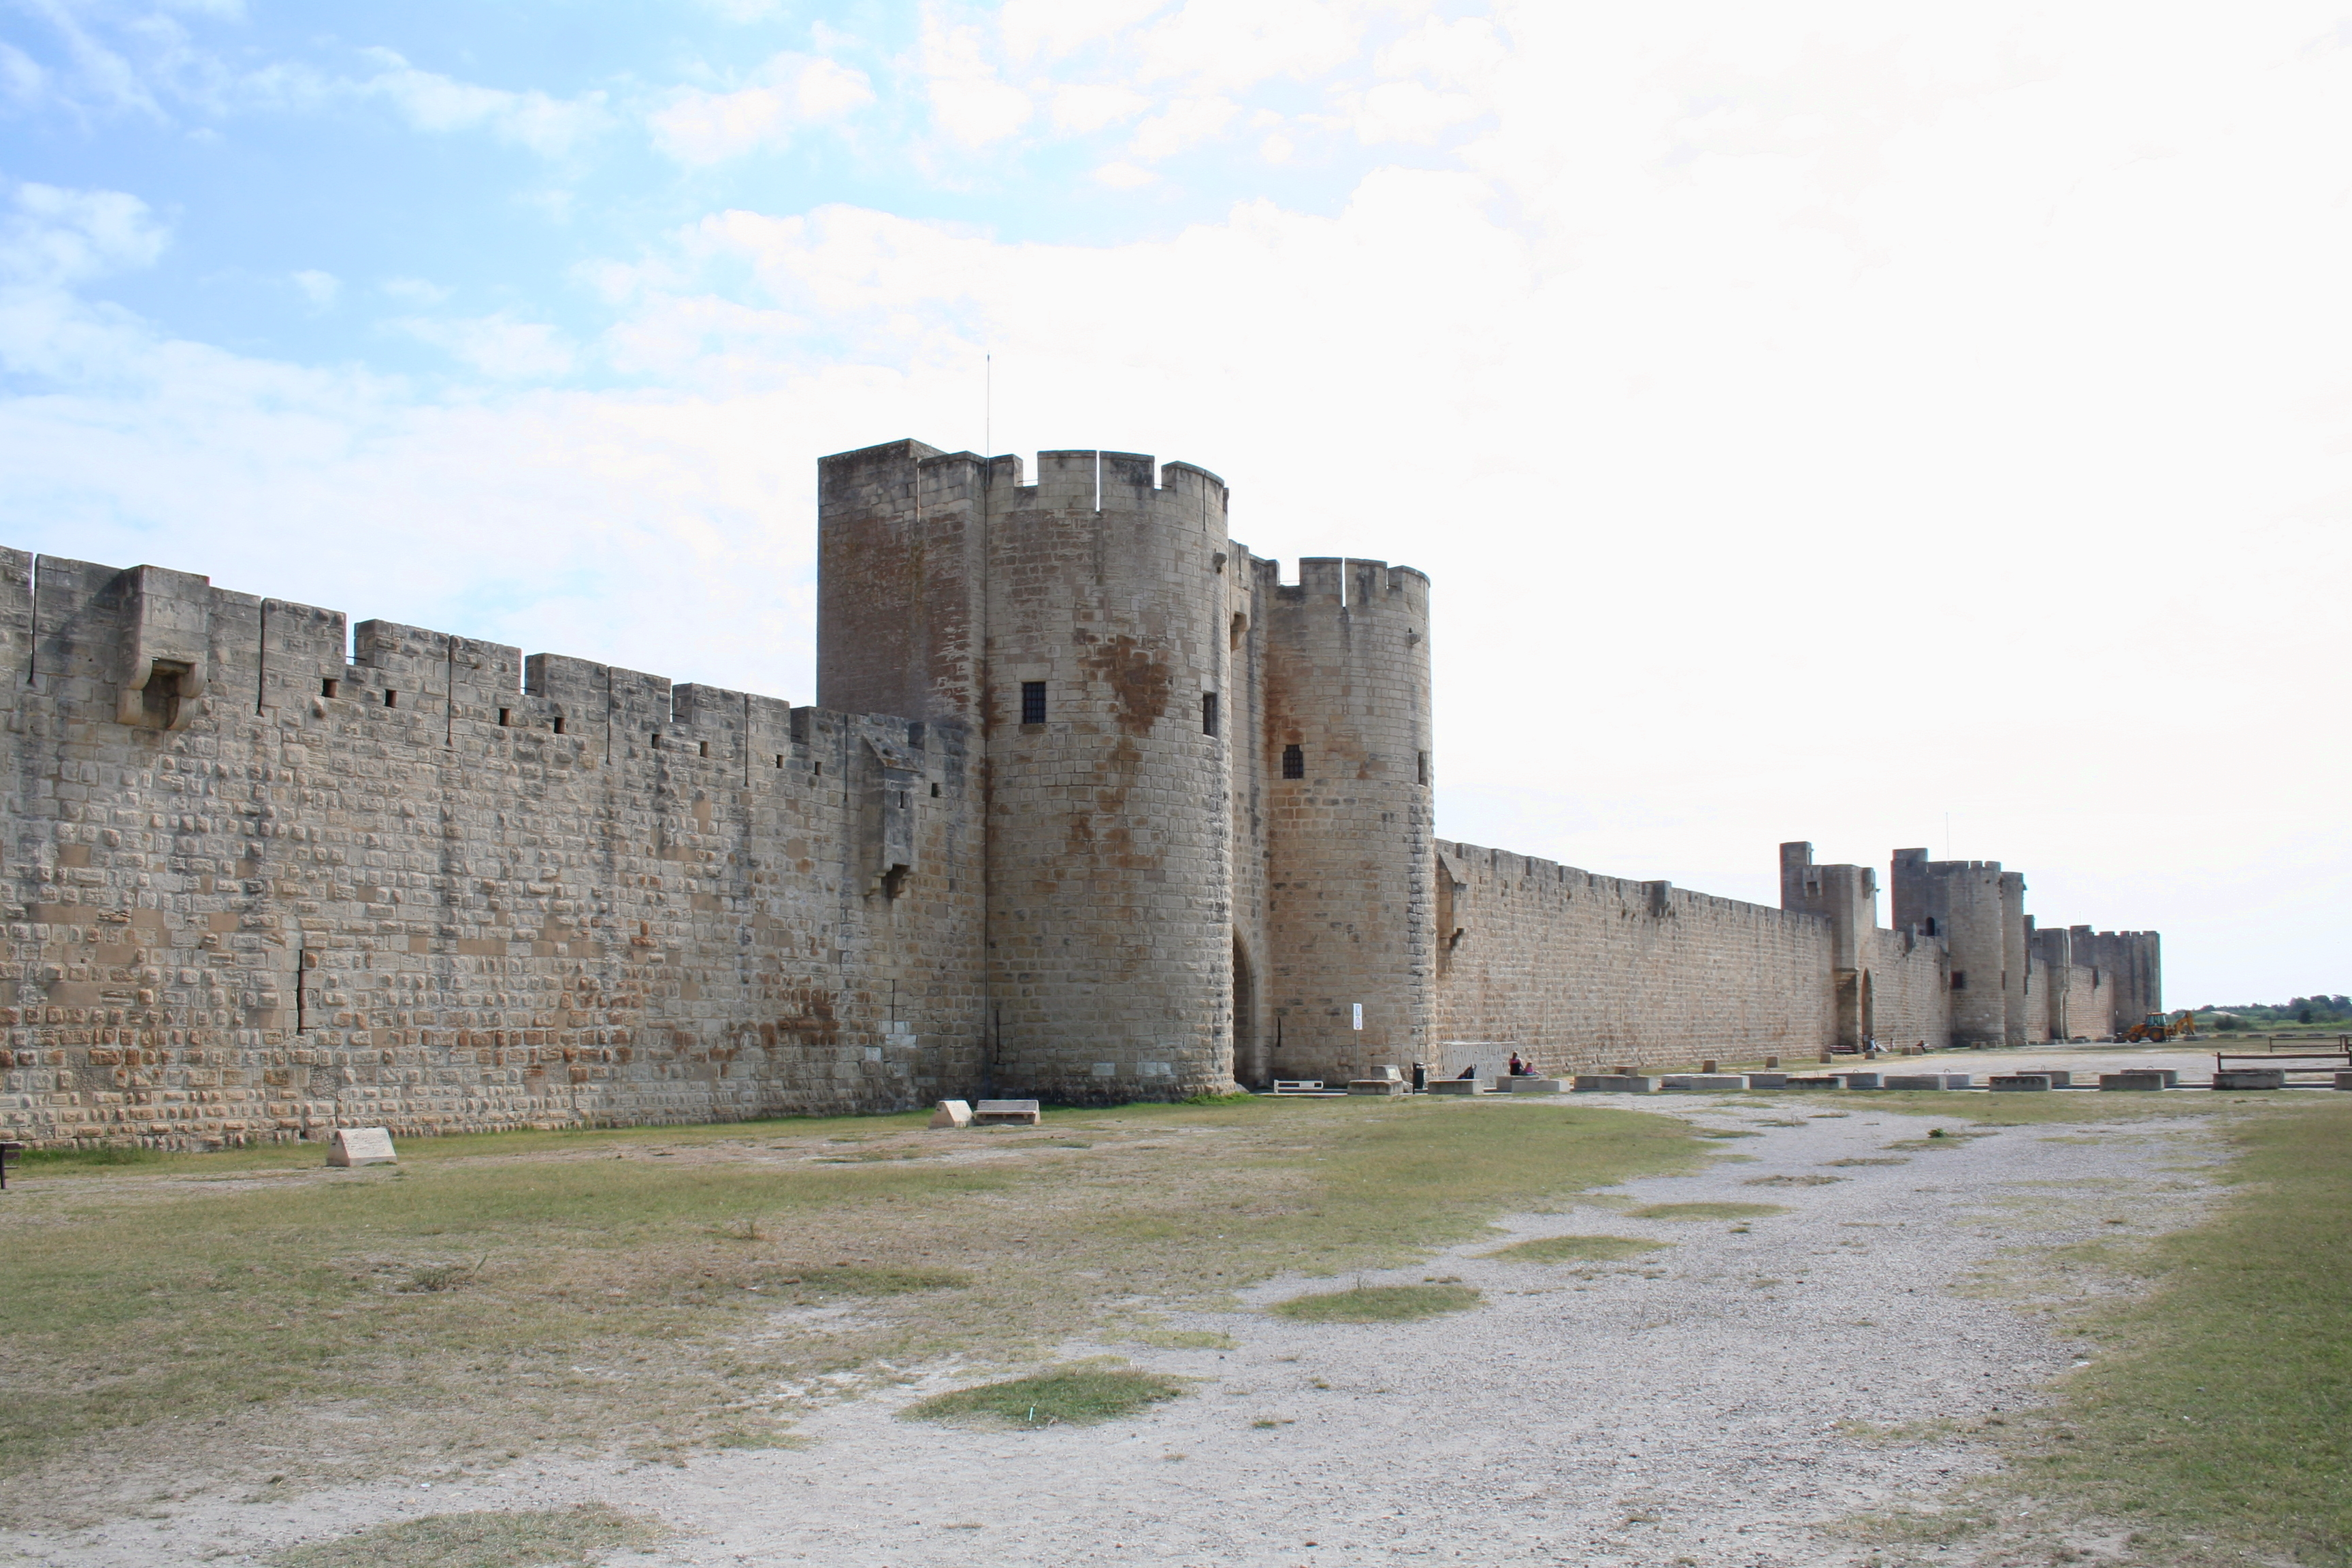 File:Aigues Mortes - City Walls 2.jpg - Wikimedia Commons